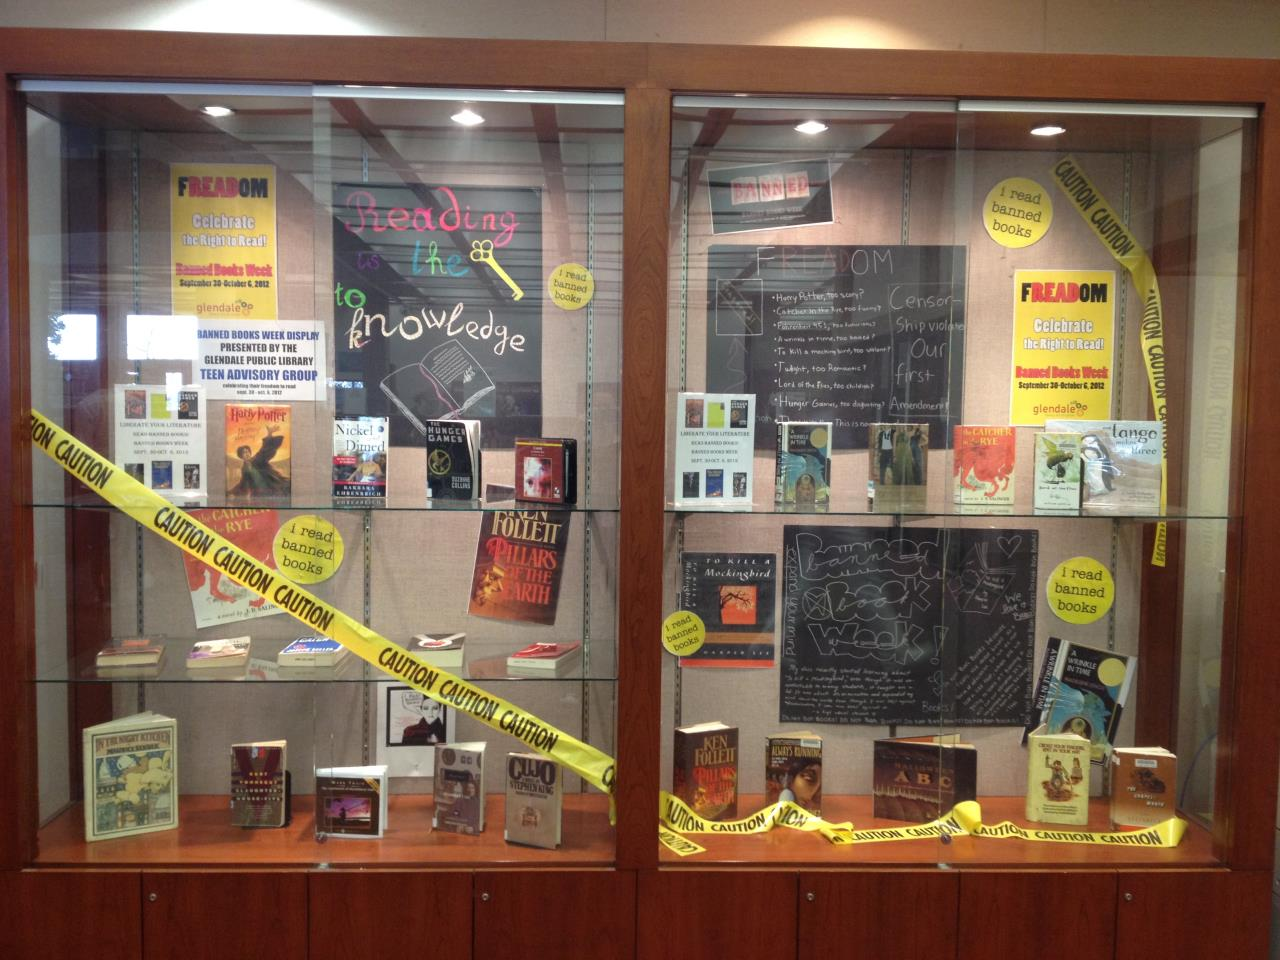 Banned Book Week display created by Teen Advisory Group